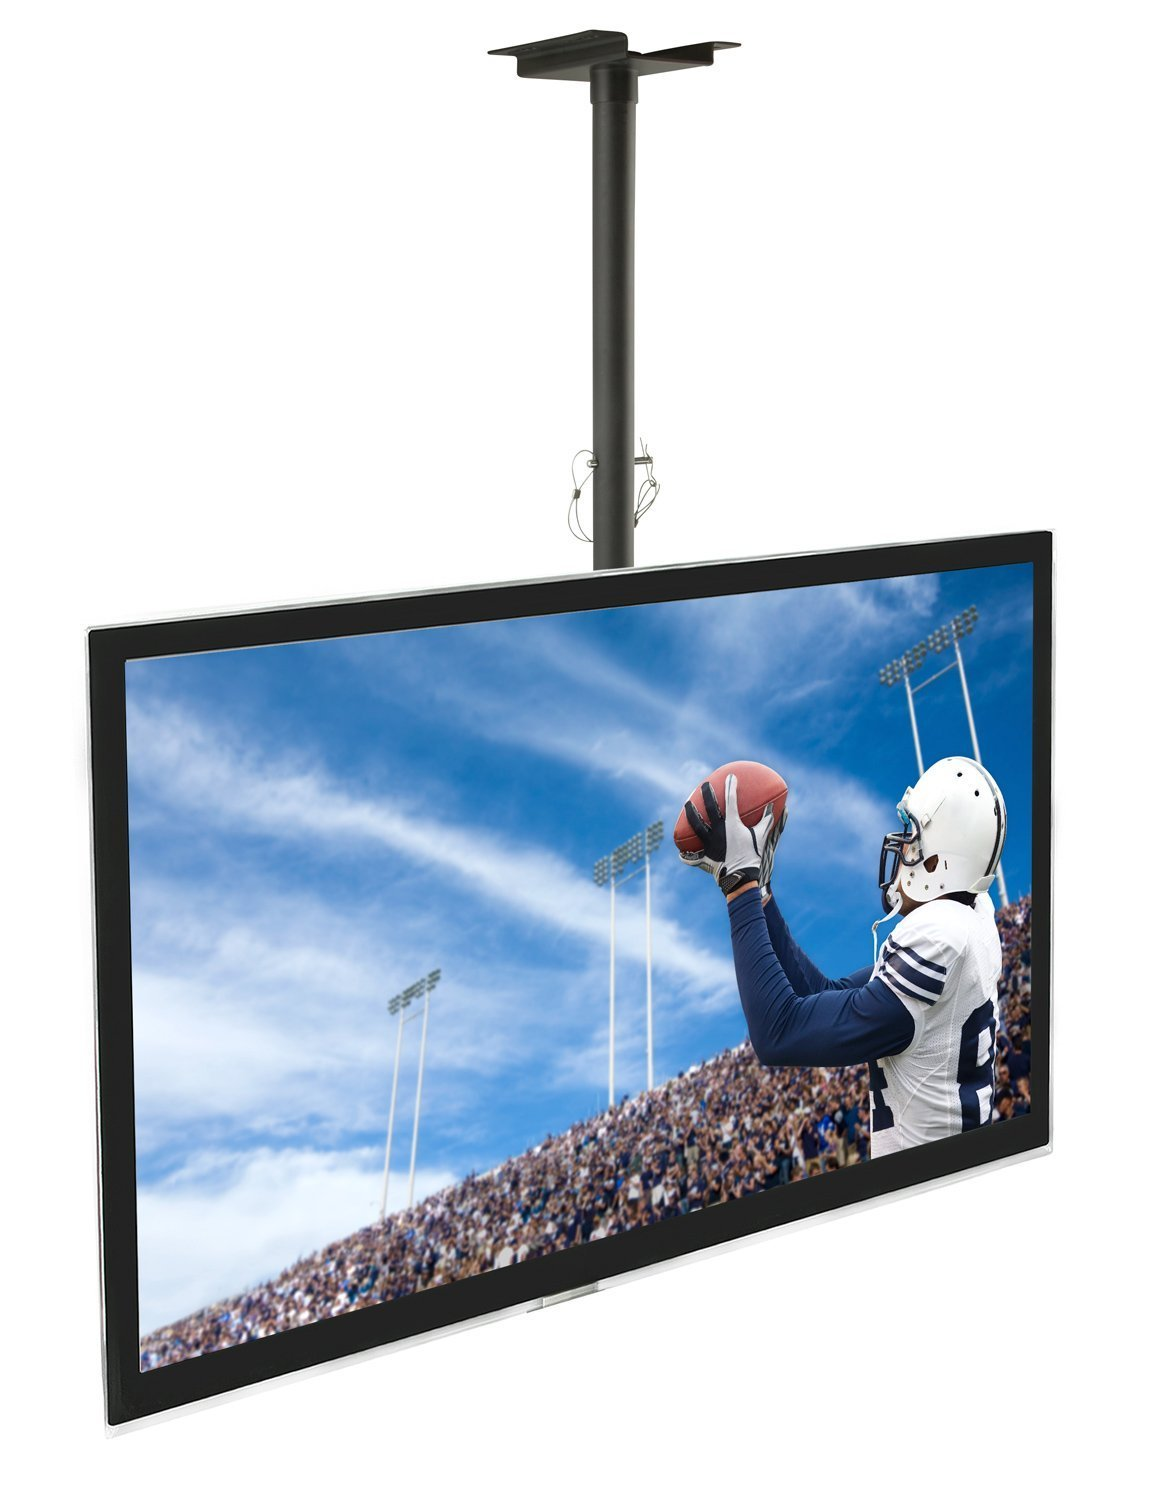 Mount-It Ceiling TV Mount For 32 37 40 42 43 50 55 60 65 70 Inch Flat Panel Televisions, Articulating Hanging Swivel TV Pole Bracket Adjustable Height 175 Pound Capacity, Black (MI-501B), Single by Mount-It!